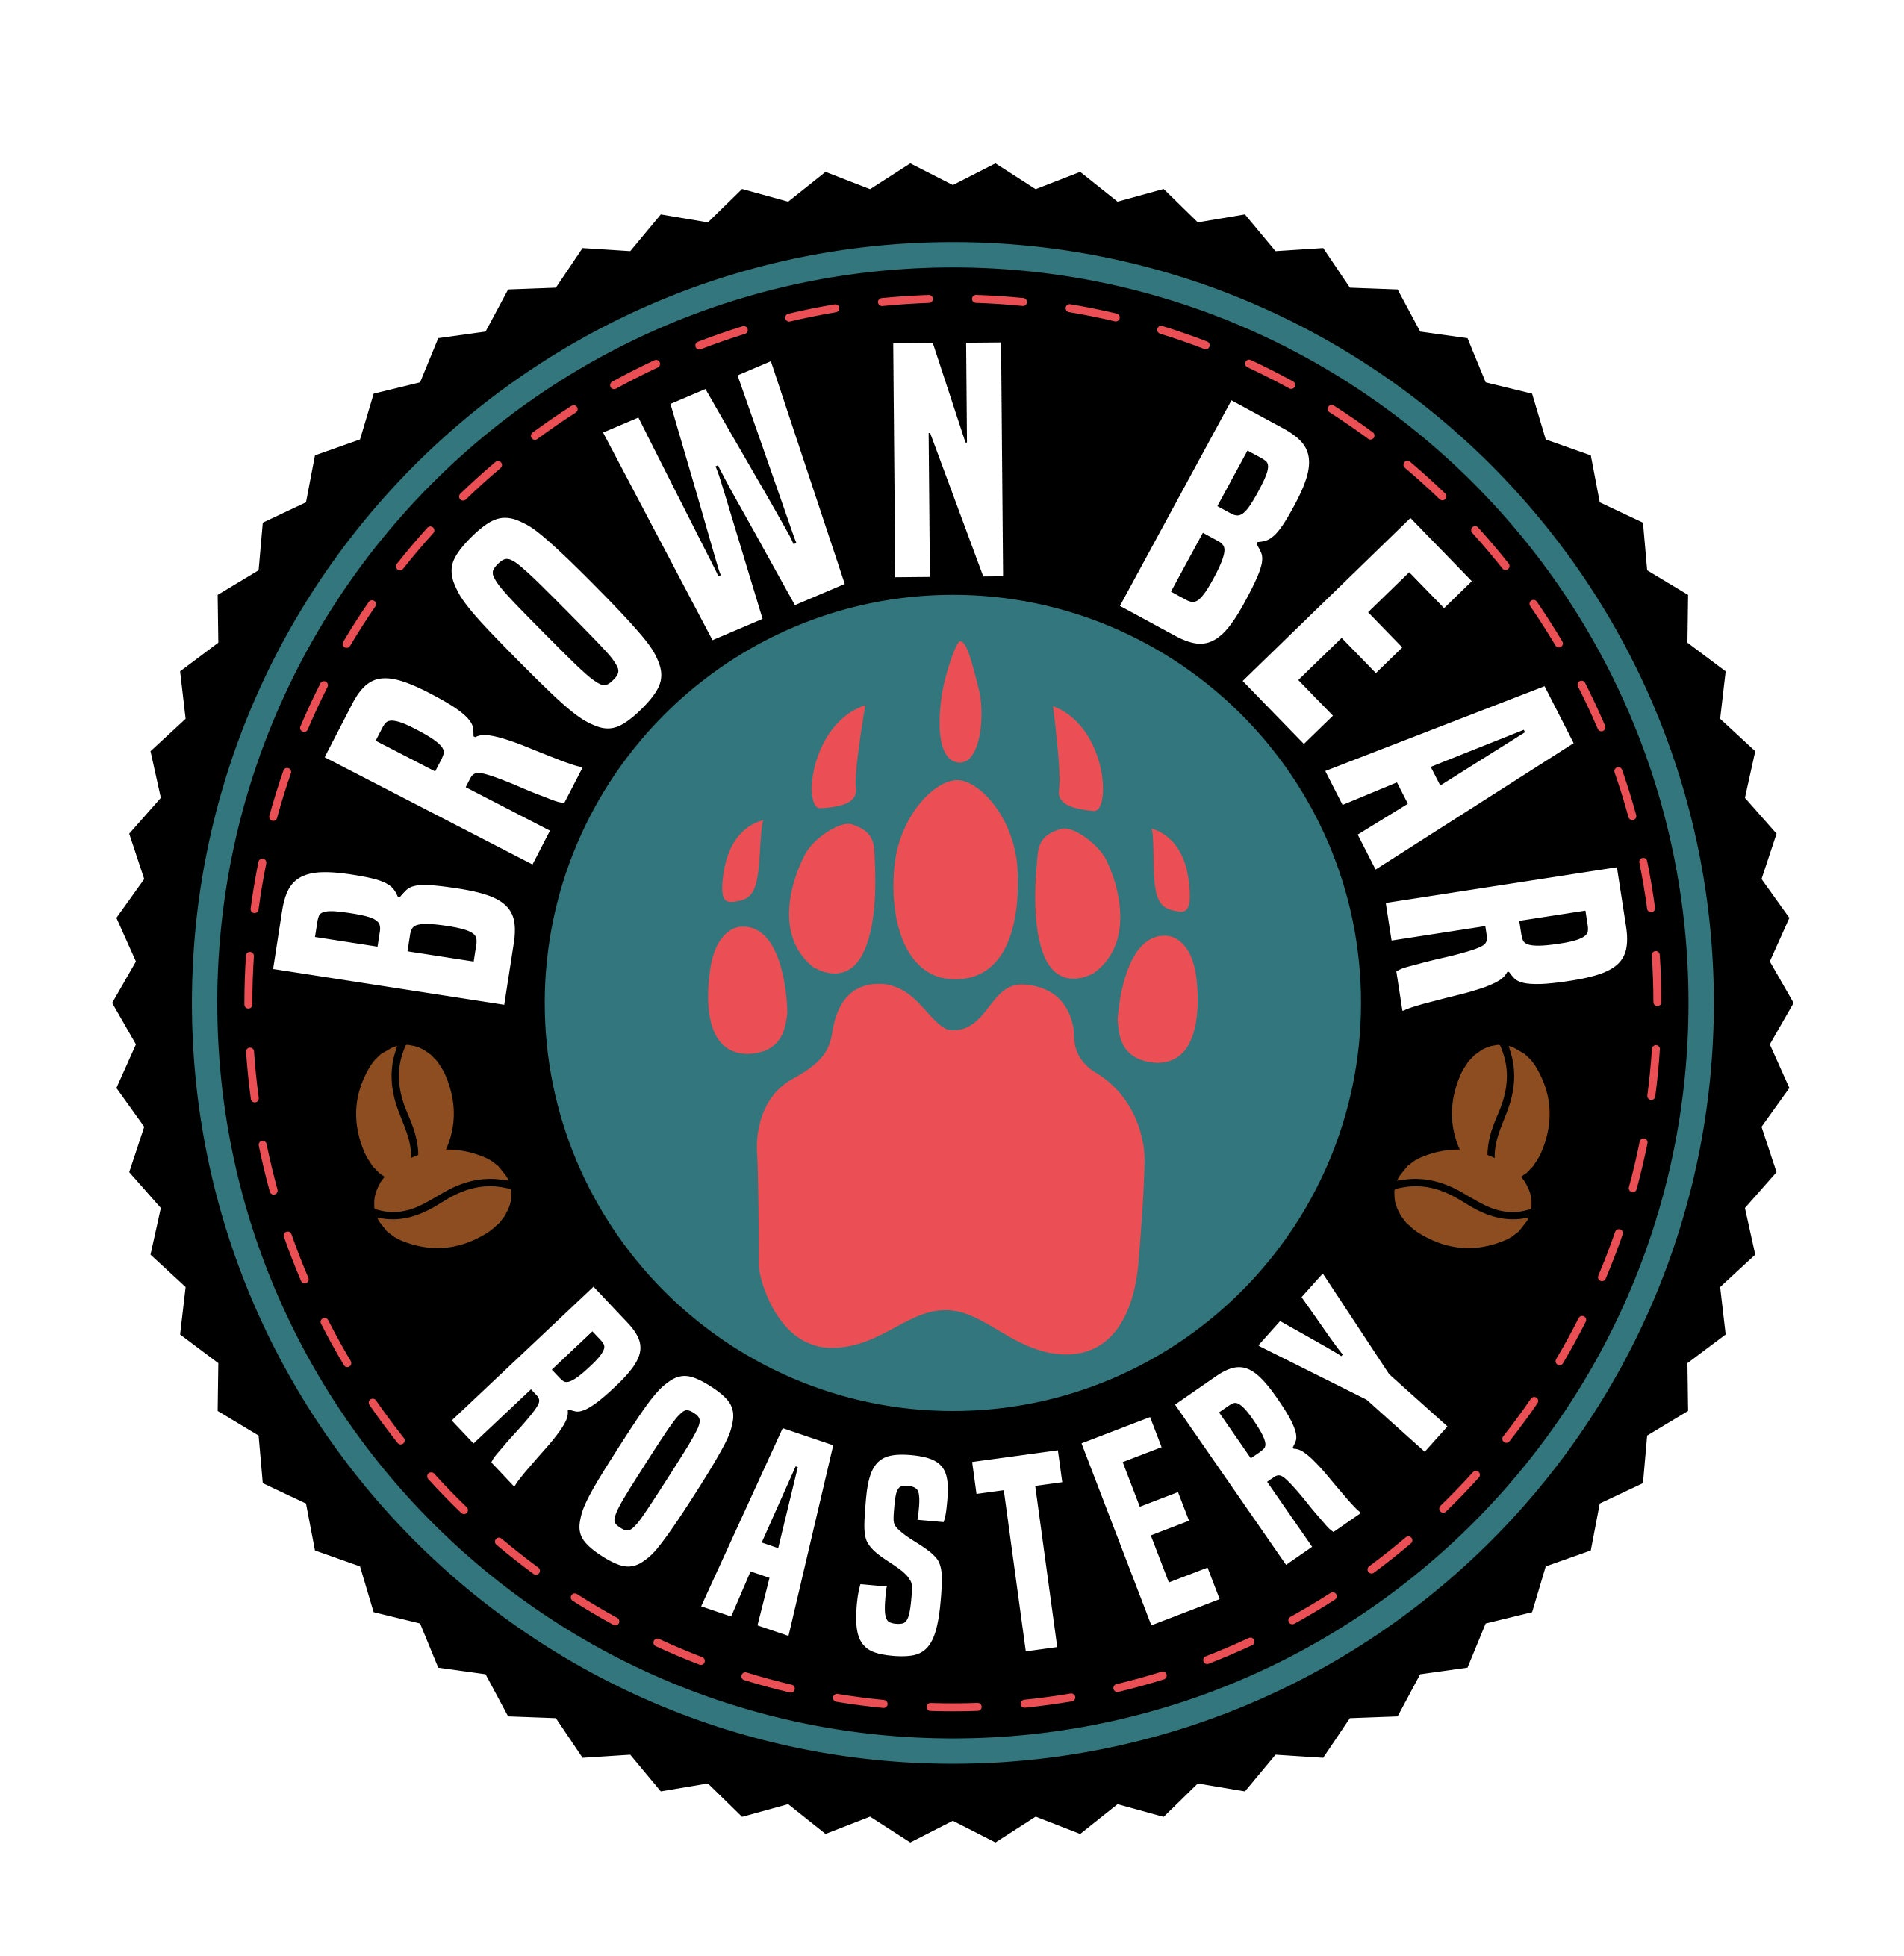 Brown Bear Roastery takes part in the 2019 Frogman Feast